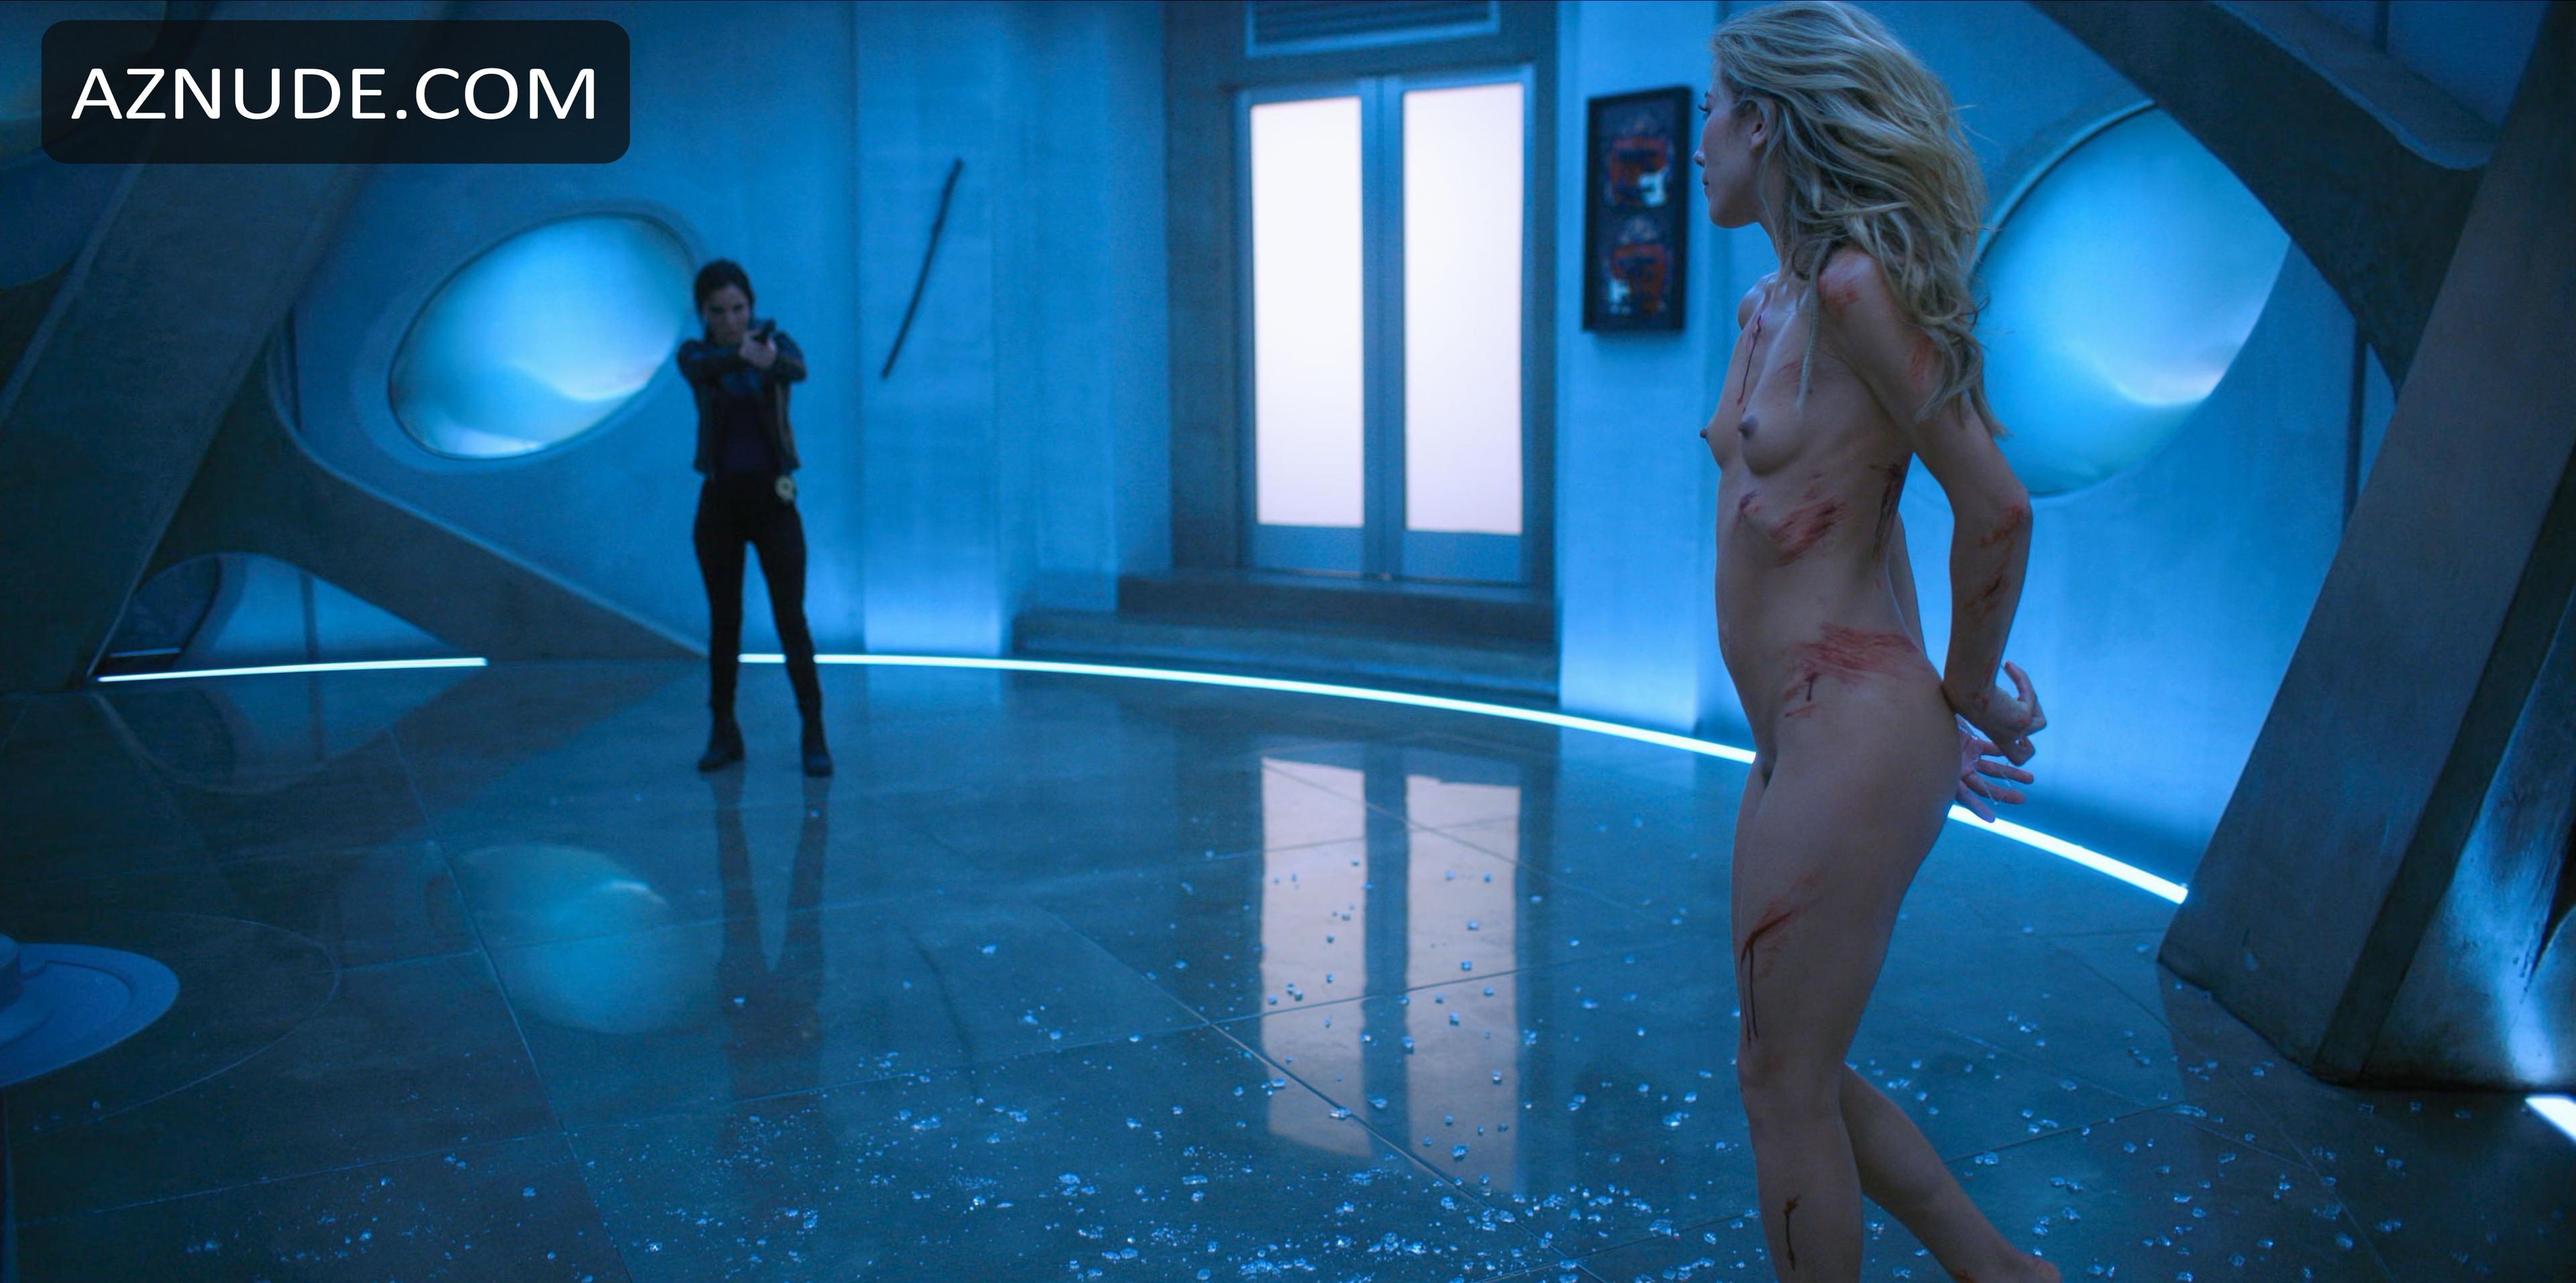 image Dichen lachman nude in 039altered carbon039 on scandalplanetcom